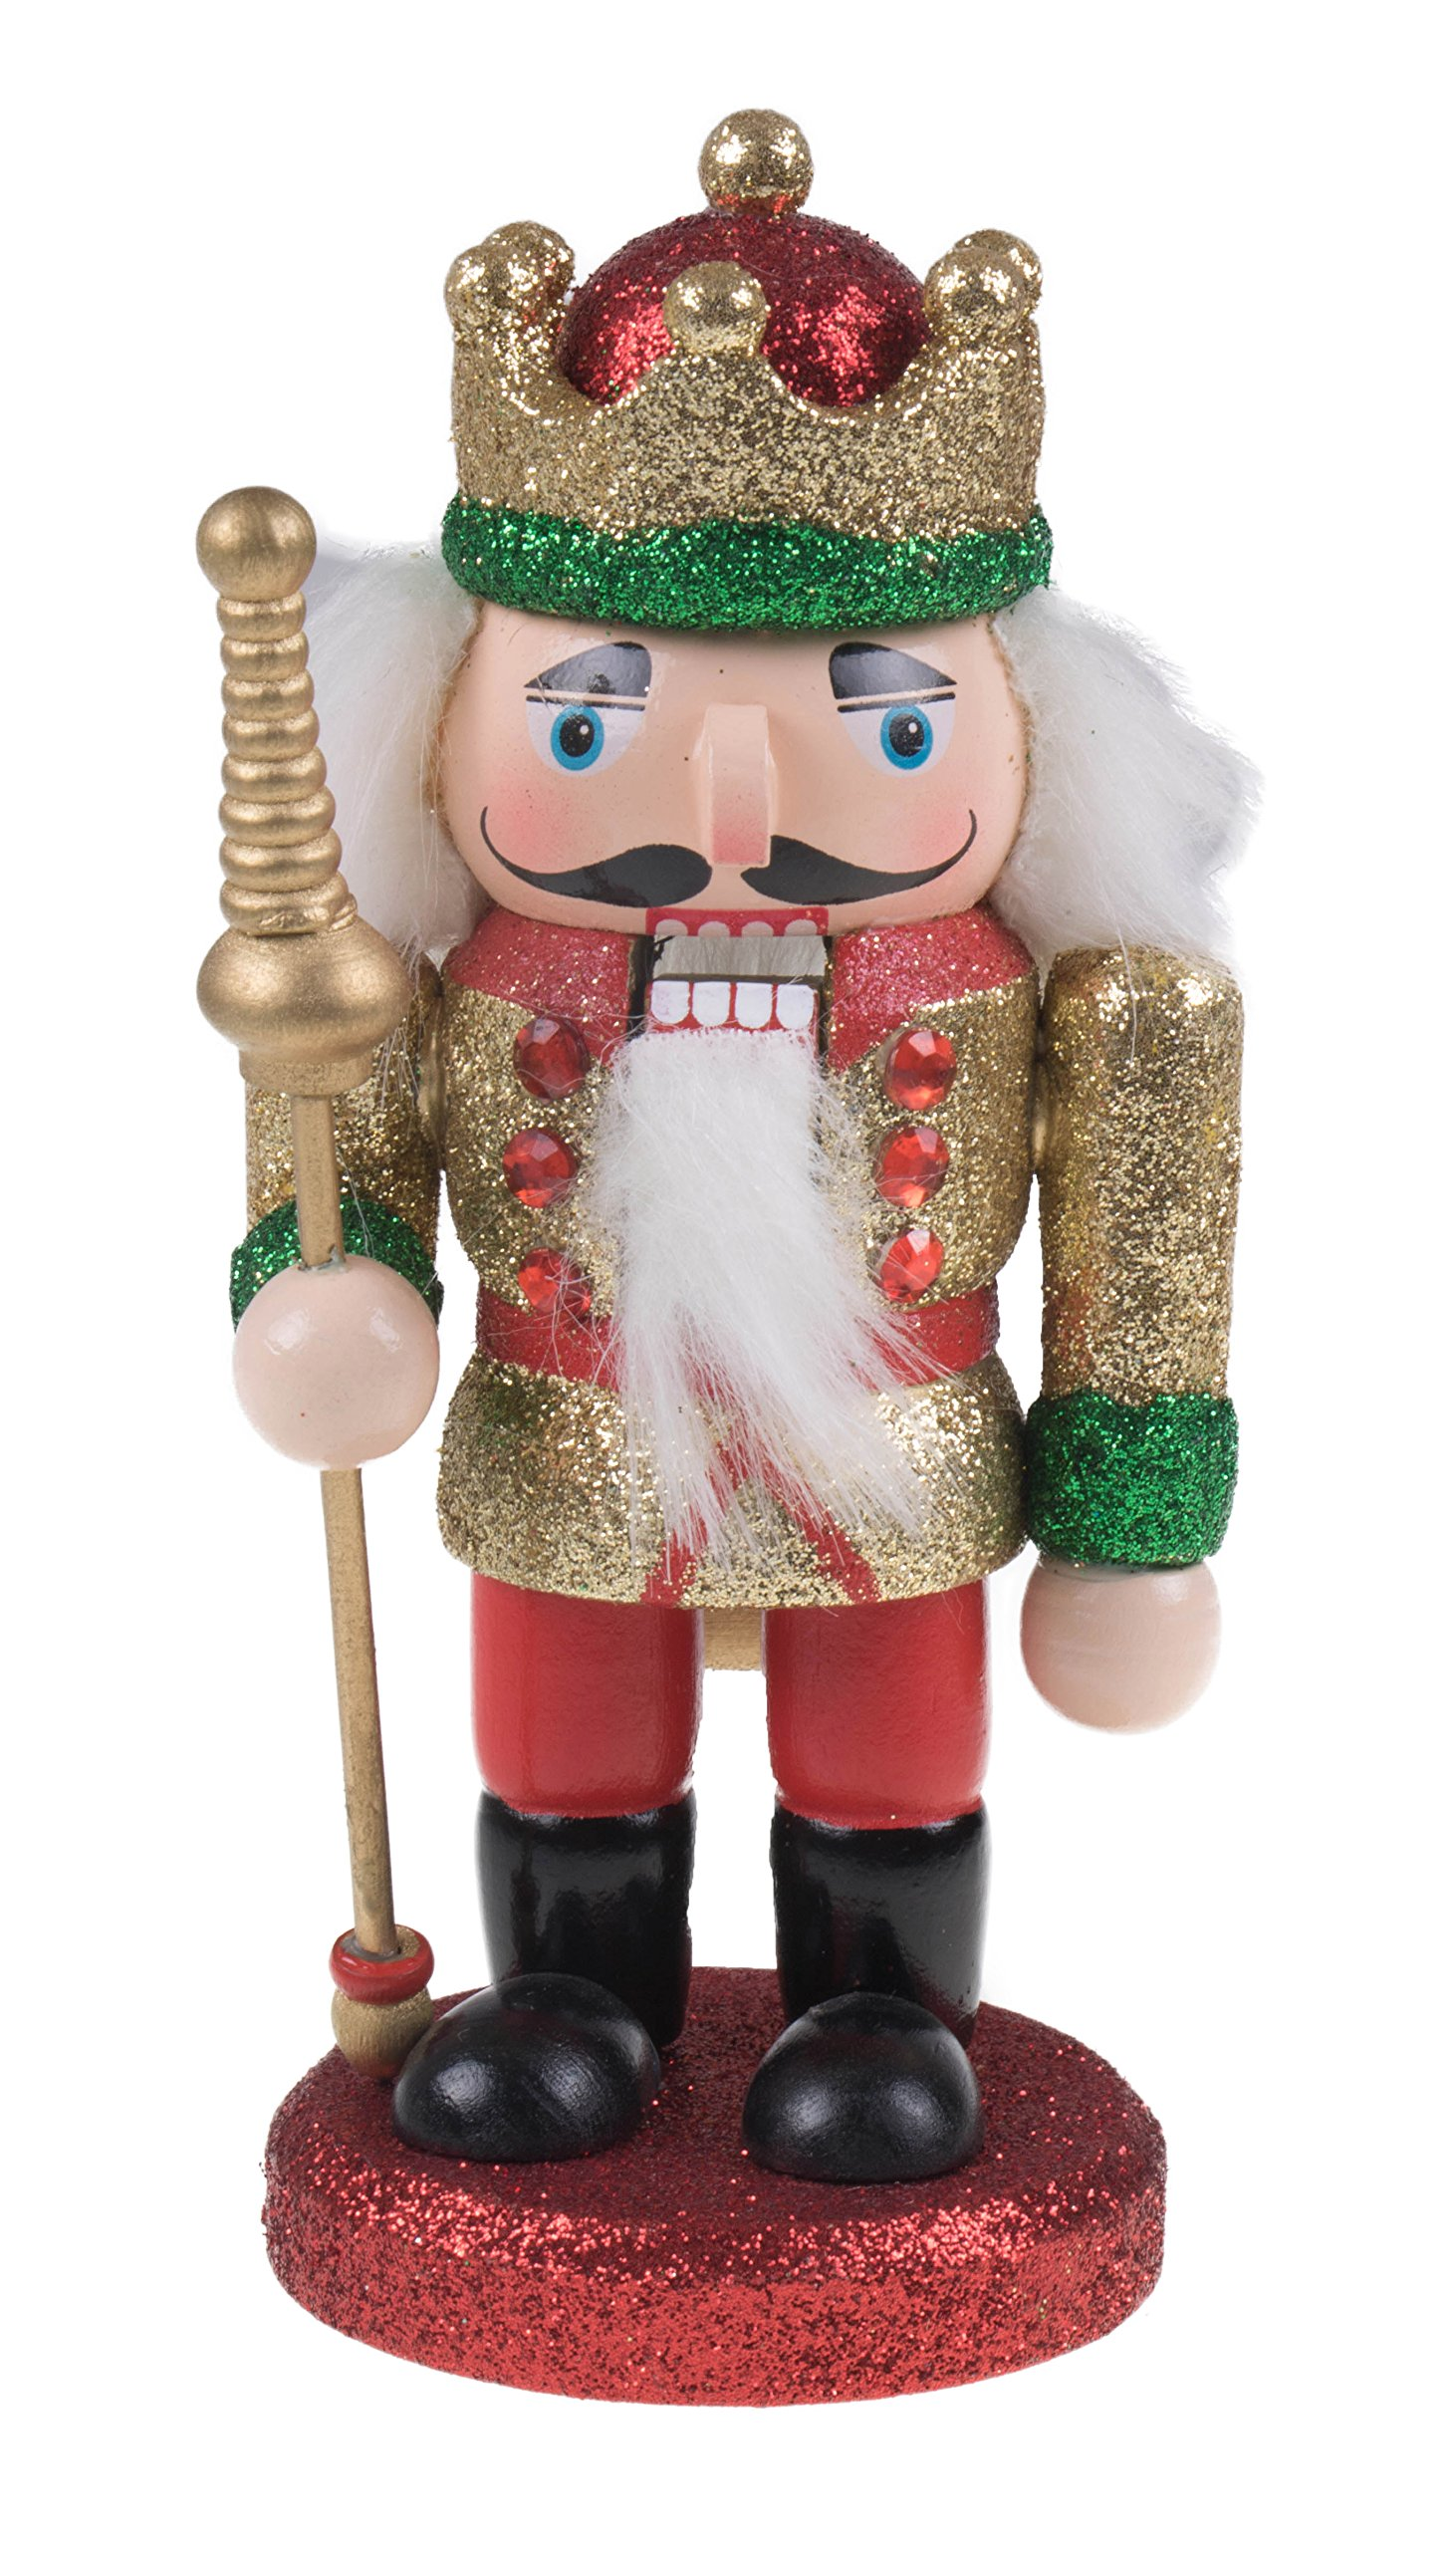 Clever Creations Traditional Wooden Gold and Red Chubby King Nutcracker Crown, Boots, Scepter   Festive Christmas Decor   6.25'' Tall Perfect for Shelves and Tables